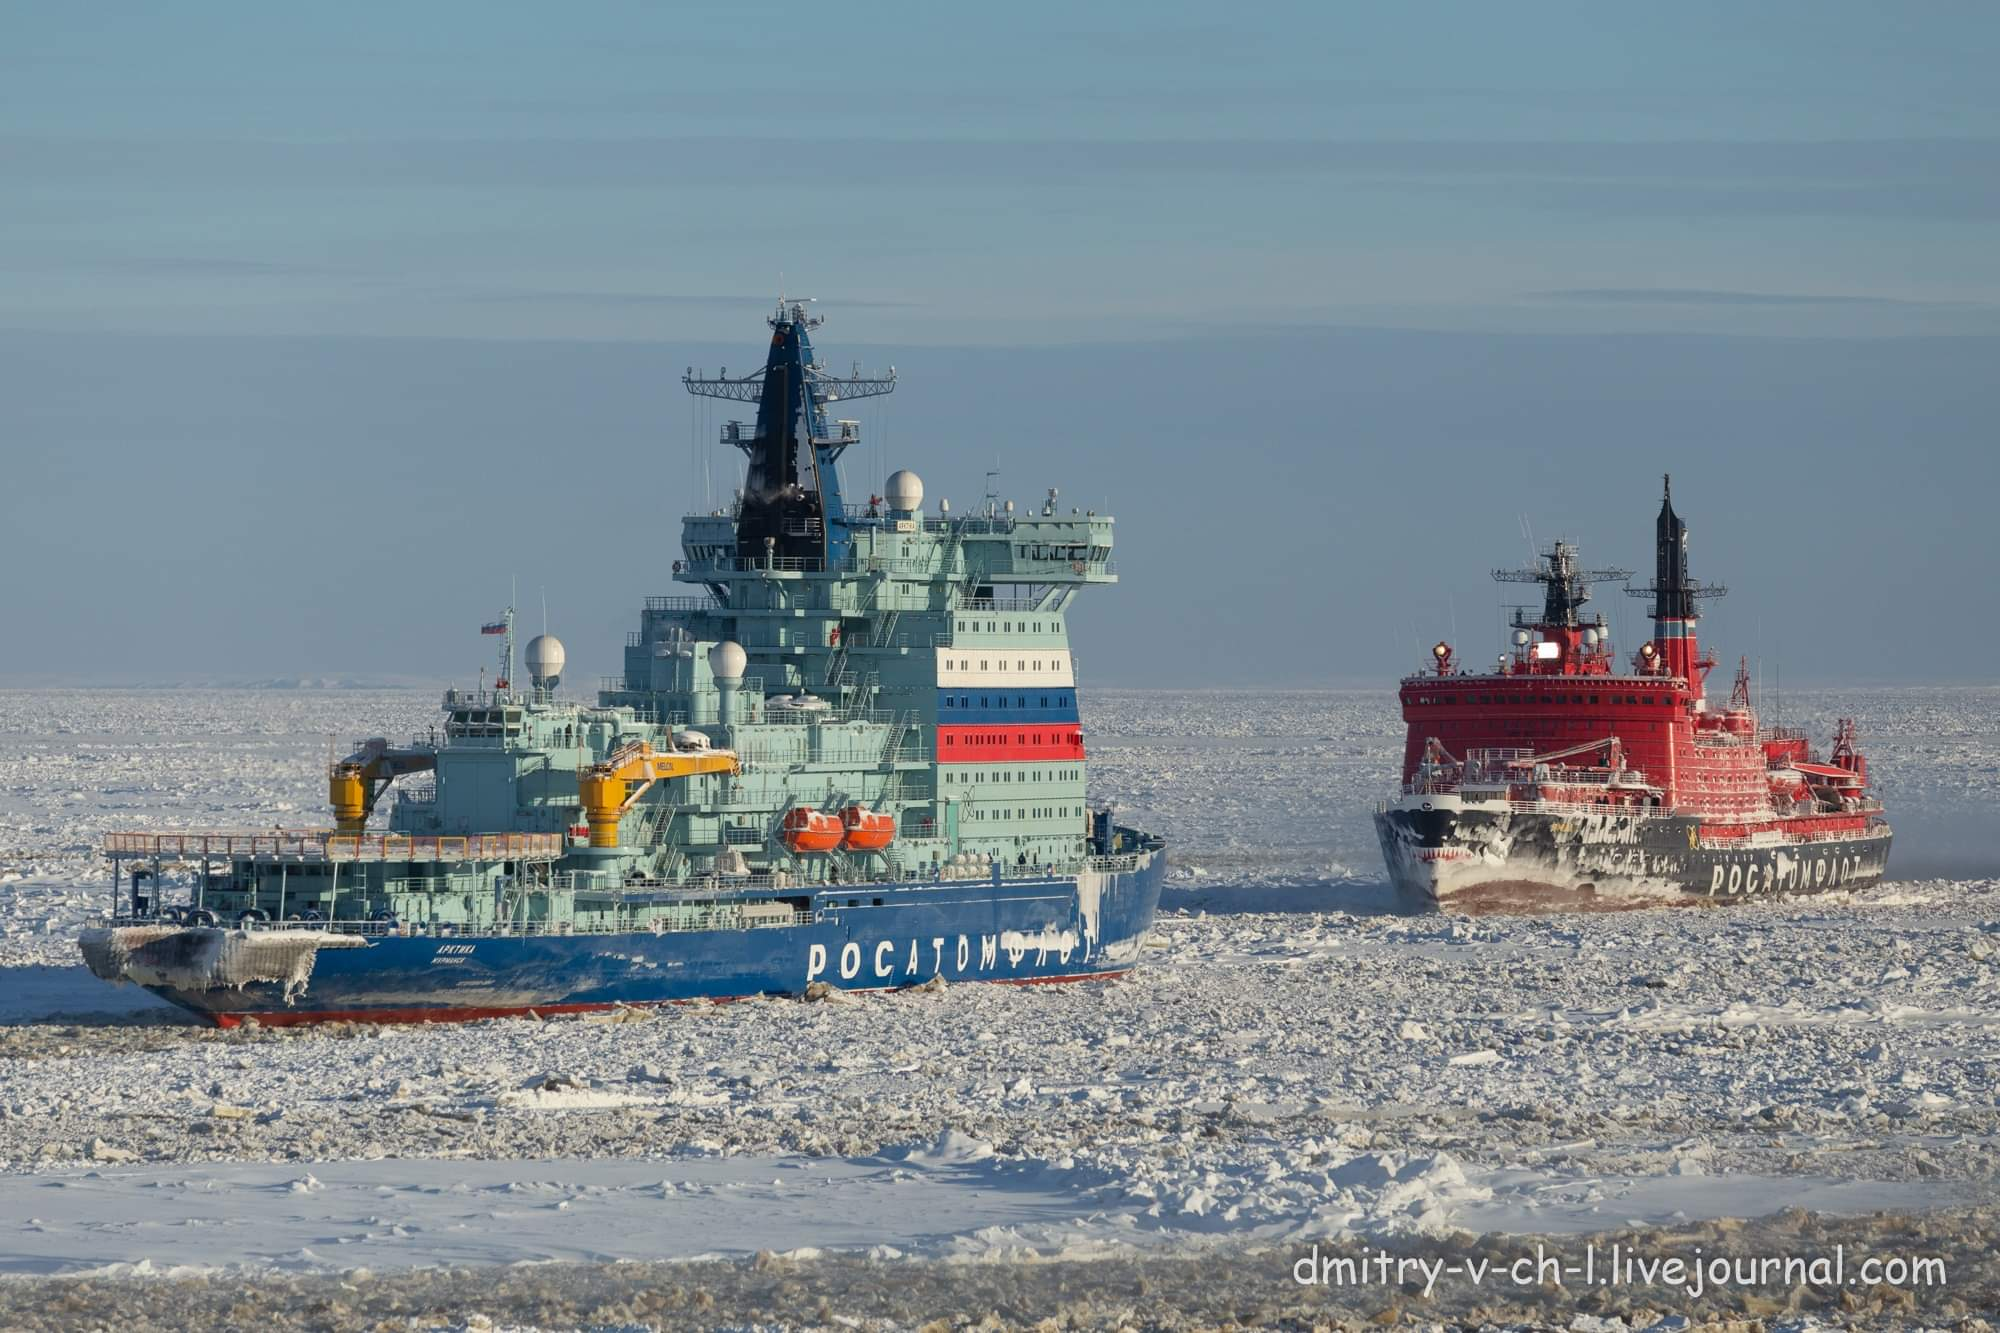 Icebreakers - Page 15 28-9520125-received-297359548683840